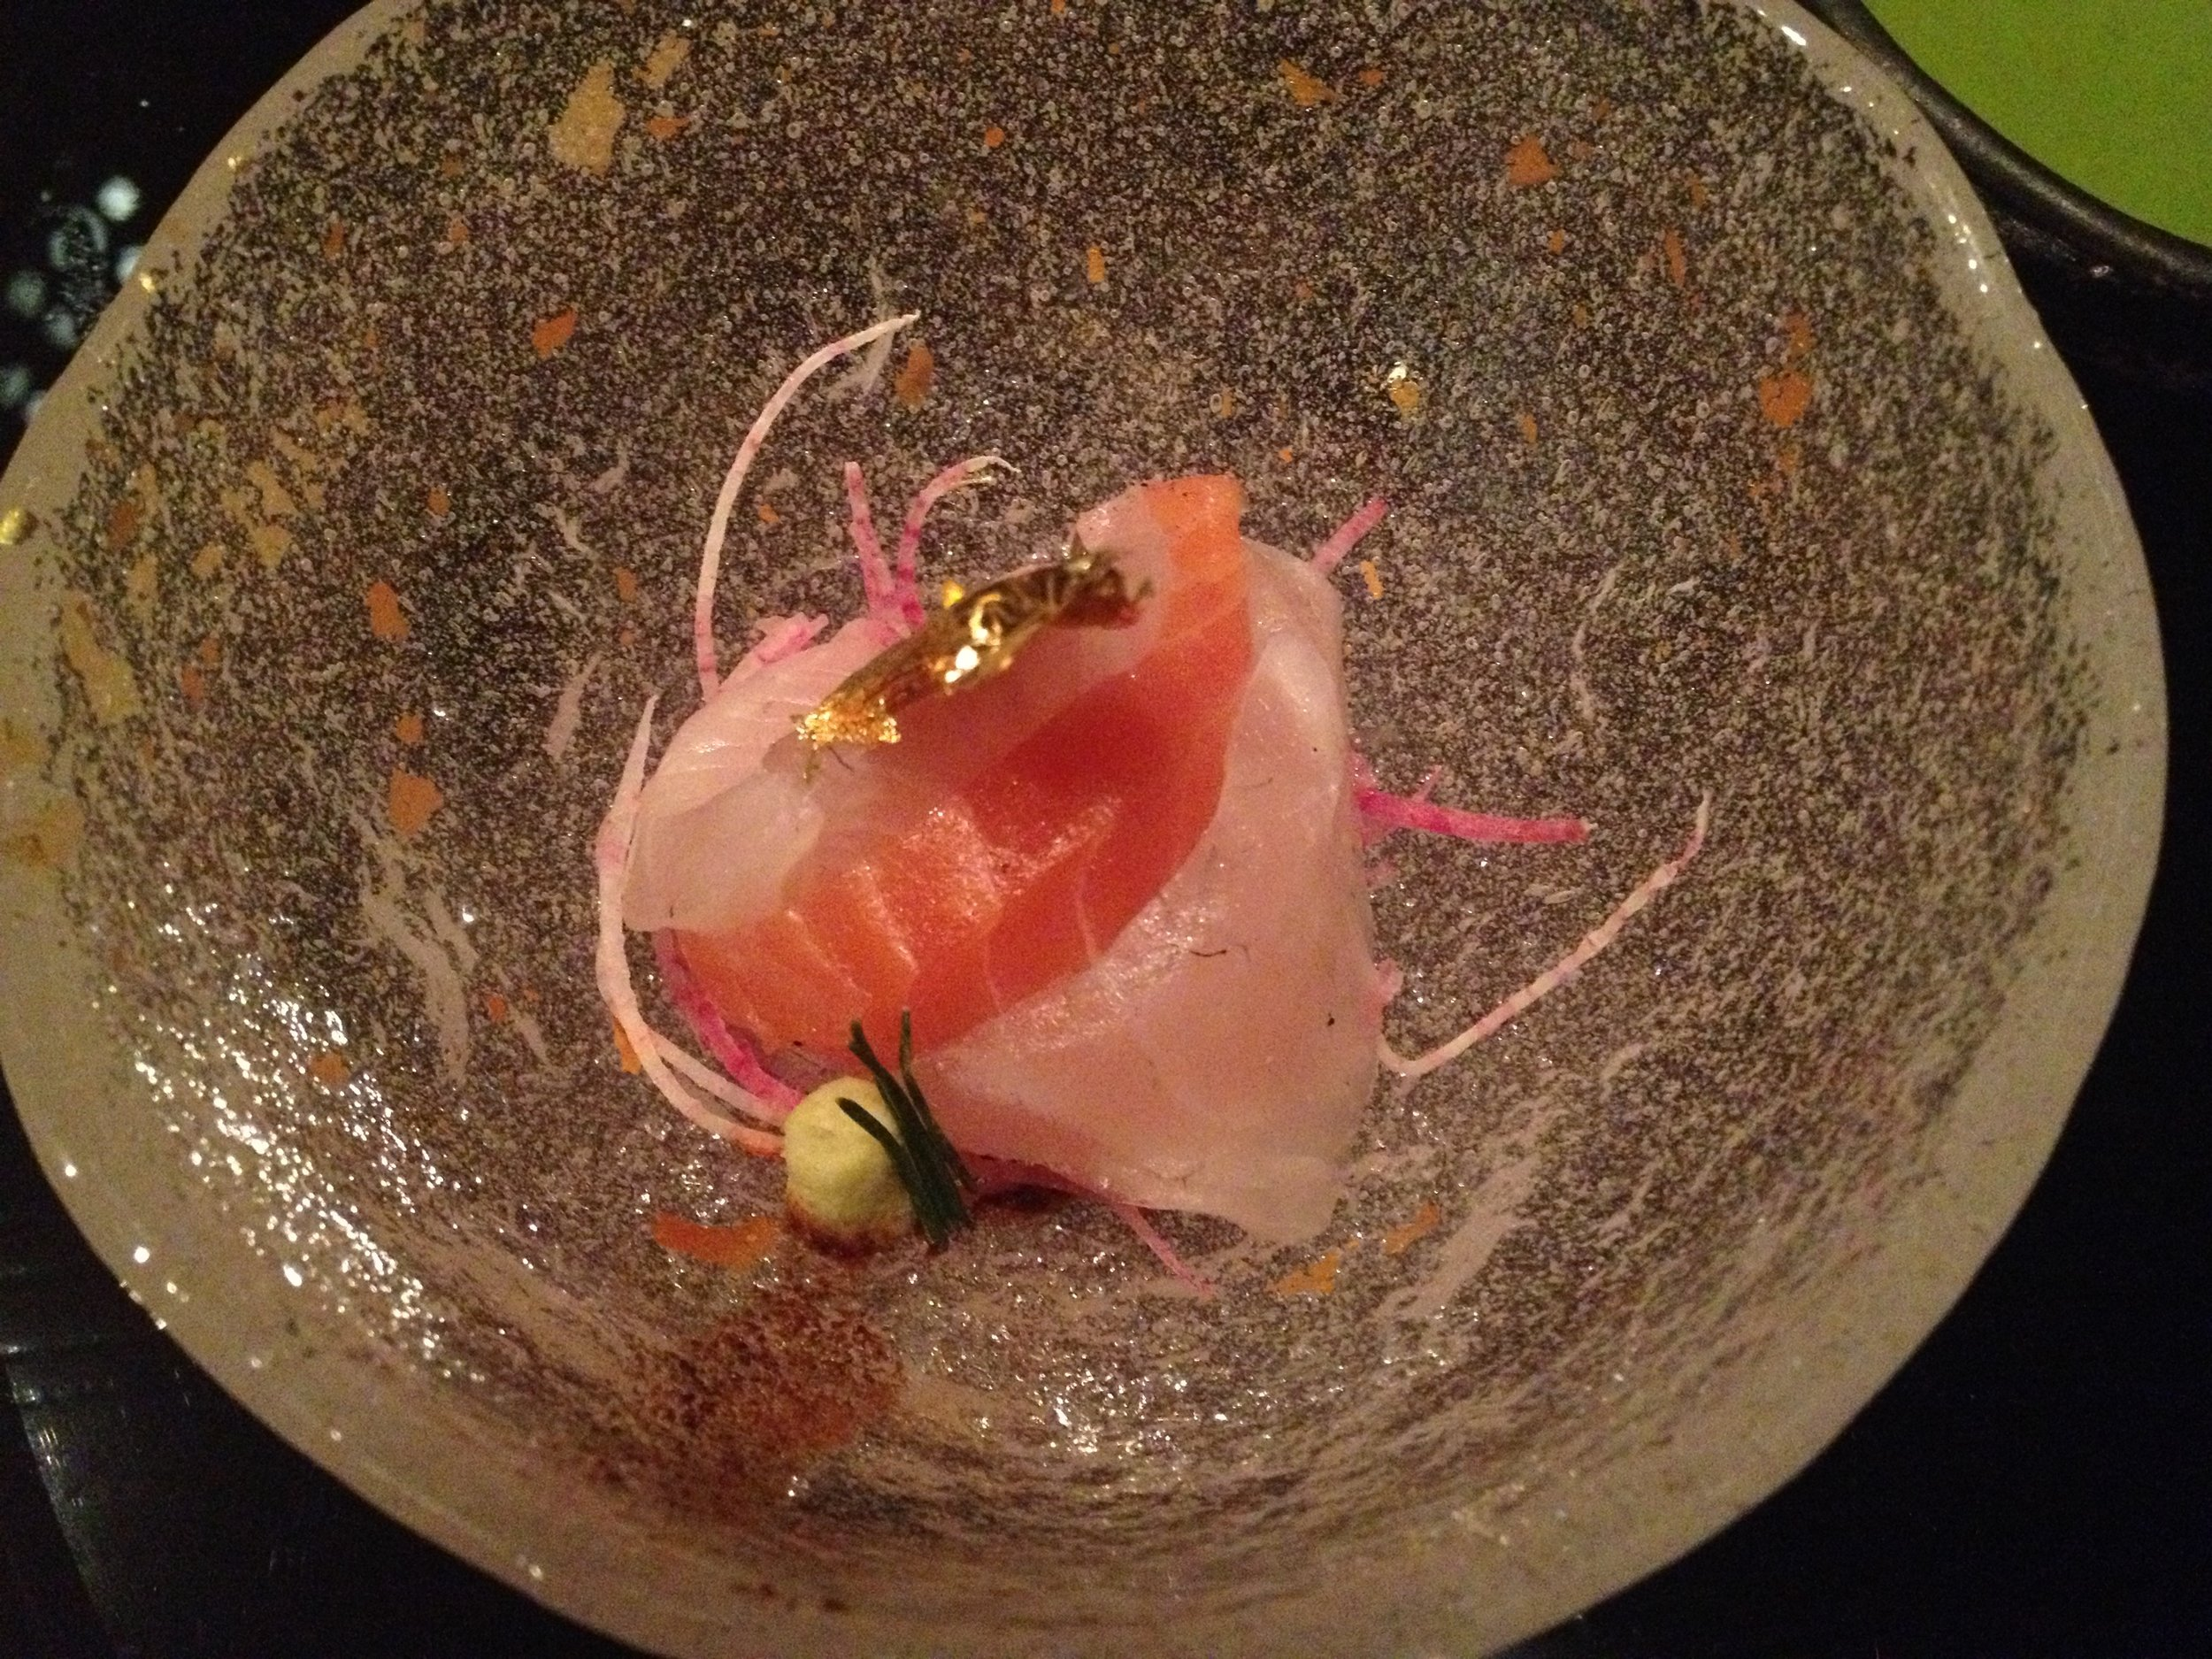 Sashimi at Next, one of the few places in the Midwest I feel comfortable eating raw fish.